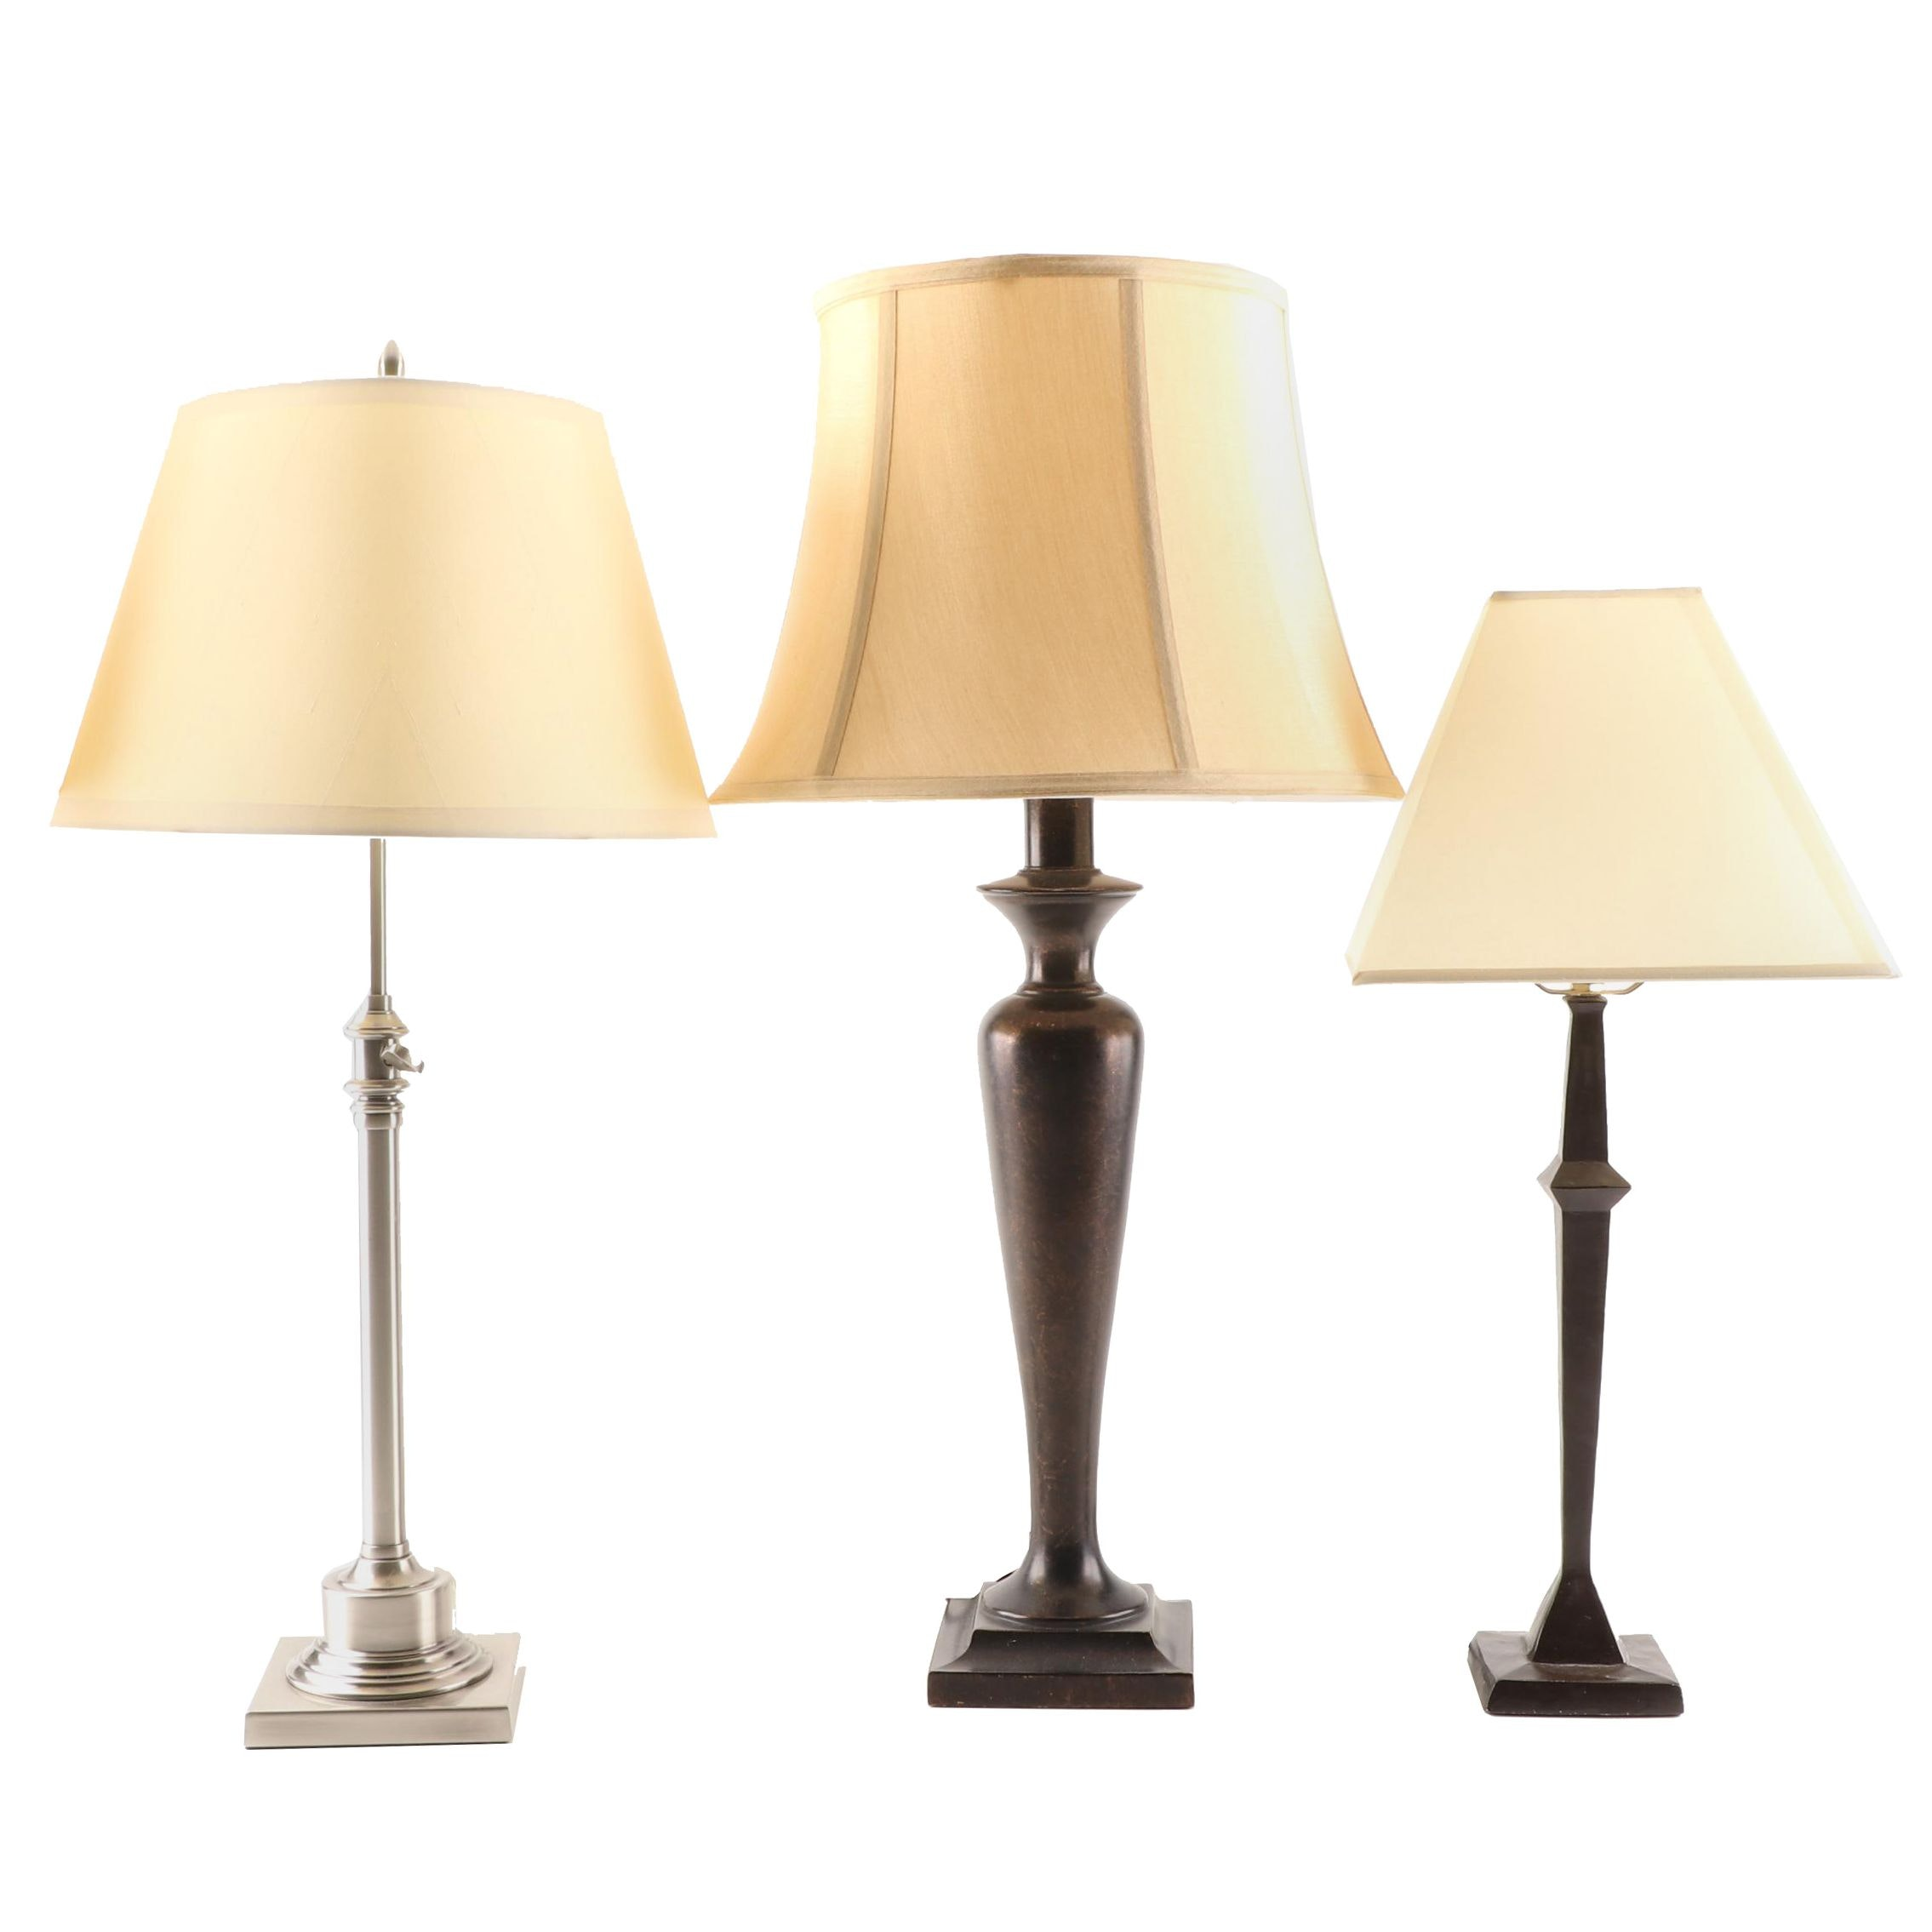 Contemporary Metal Table Lamp Grouping Featuring Restoration Hardward